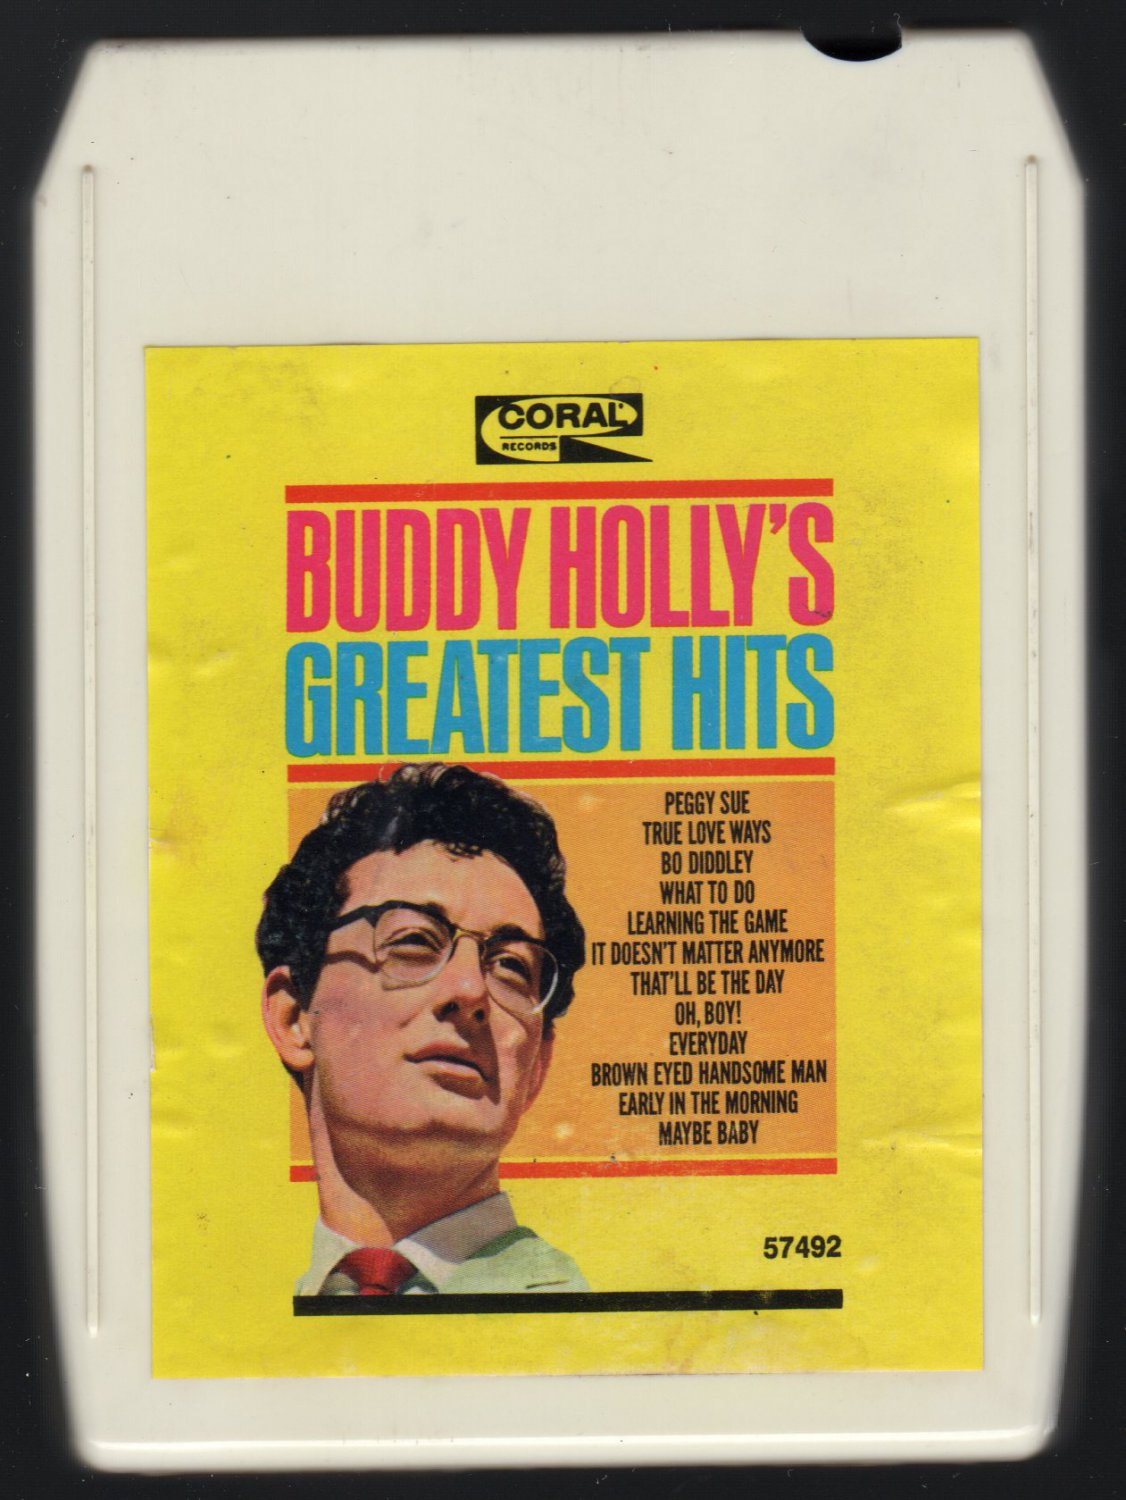 Buddy Holly - Buddy Holly's Greatest Hits 1967 CORAL A43 8-TRACK TAPE